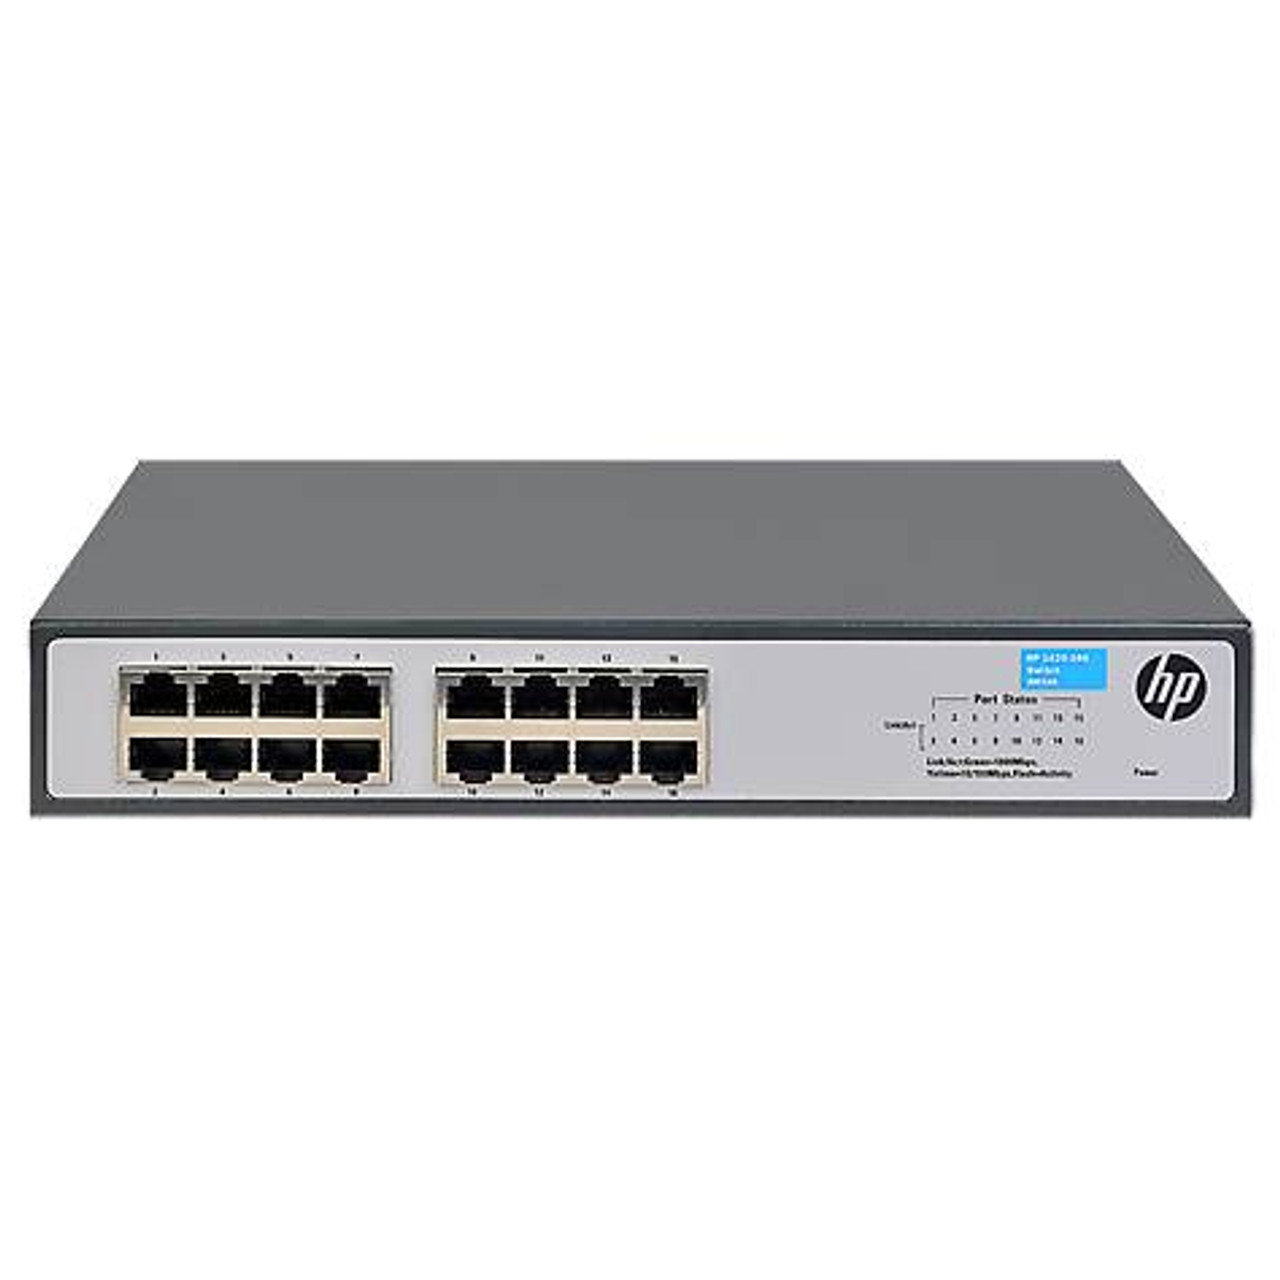 Image for HPE Aruba OfficeConnect 1420-16G 16-port Gigabit Unmanaged Switch - JH016A CX Computer Superstore